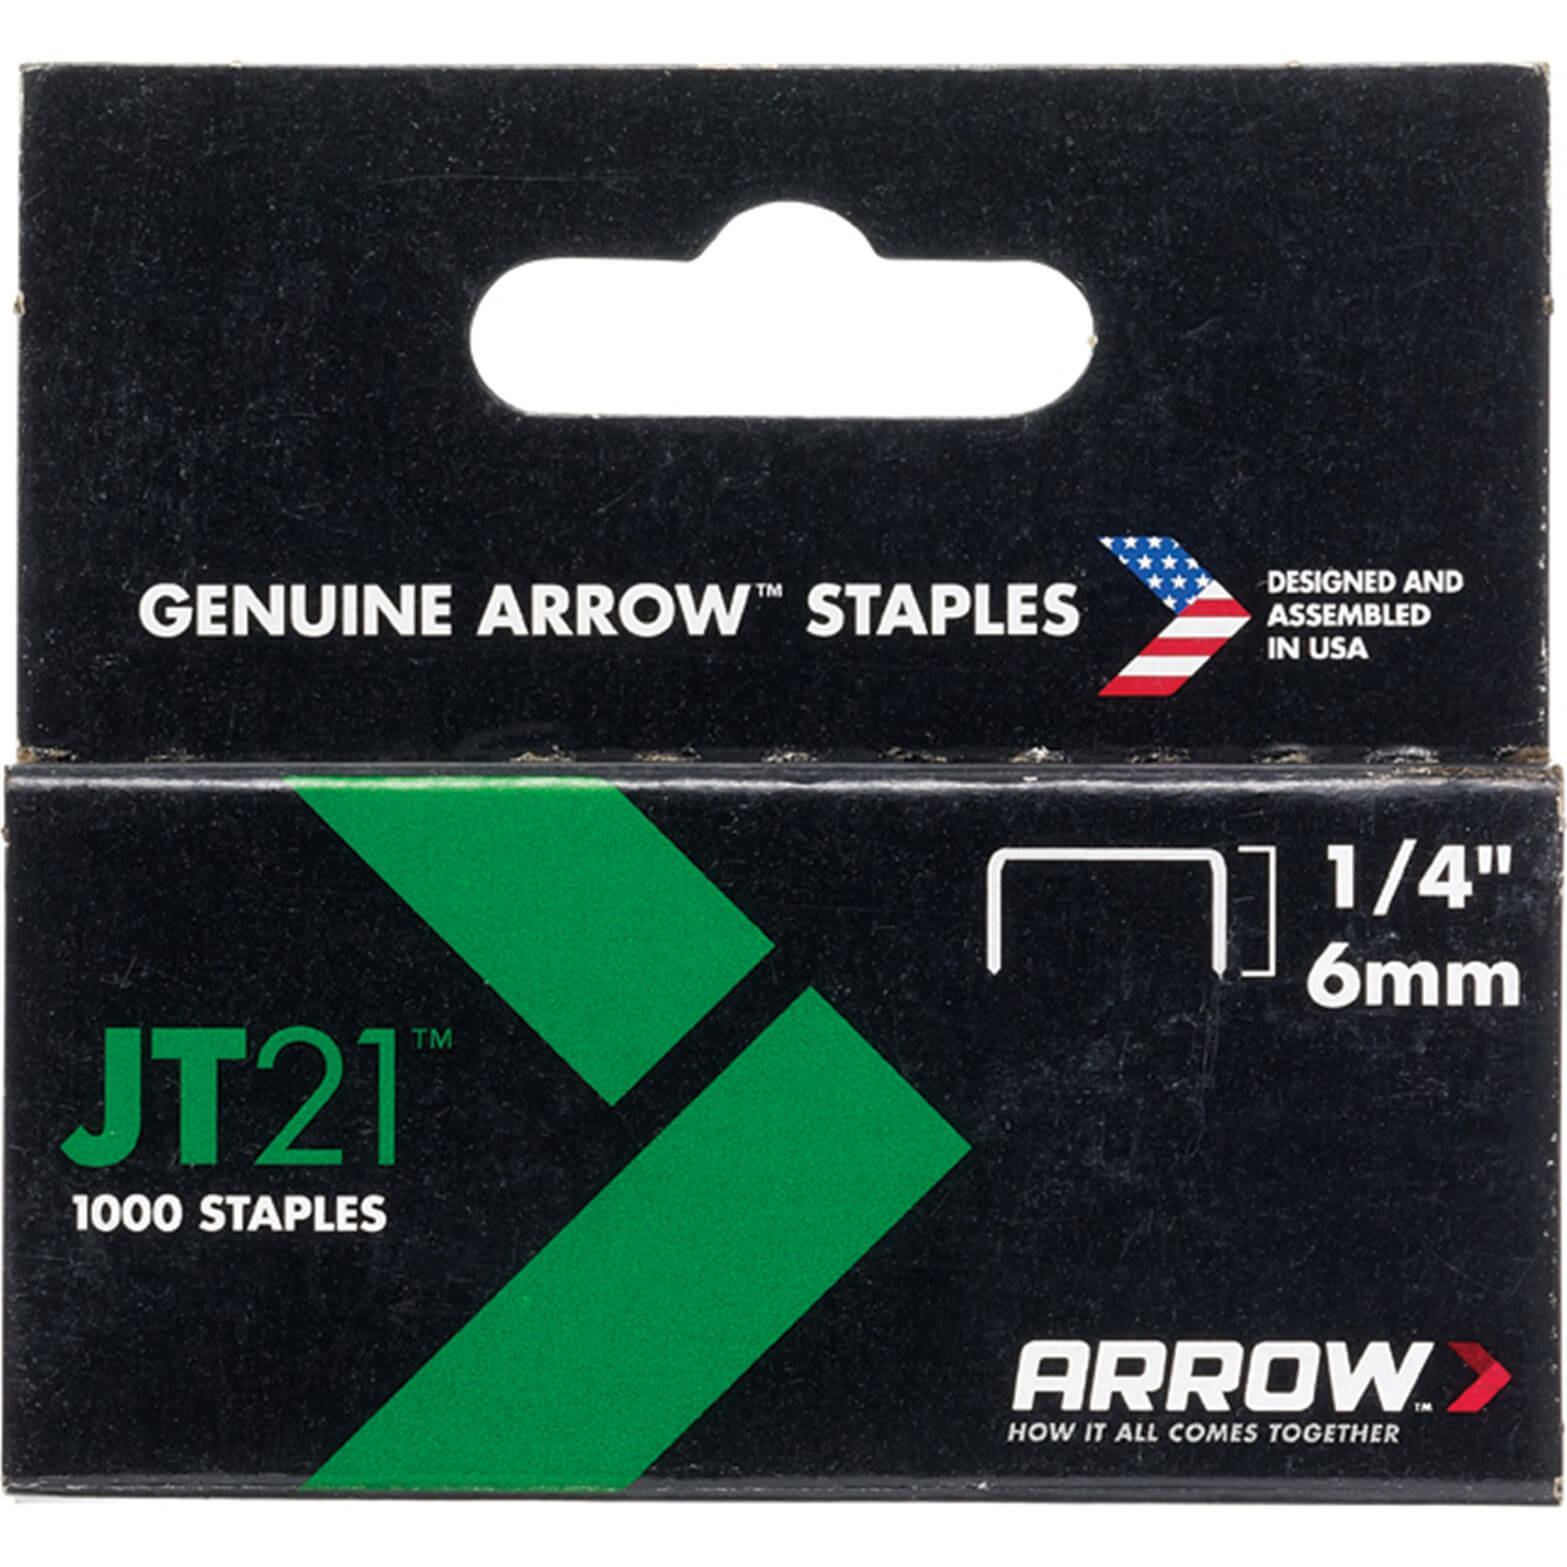 "Arrow 214 Staples 6mm / 1/4"" Pack of 1000 for JT21 & 21C"